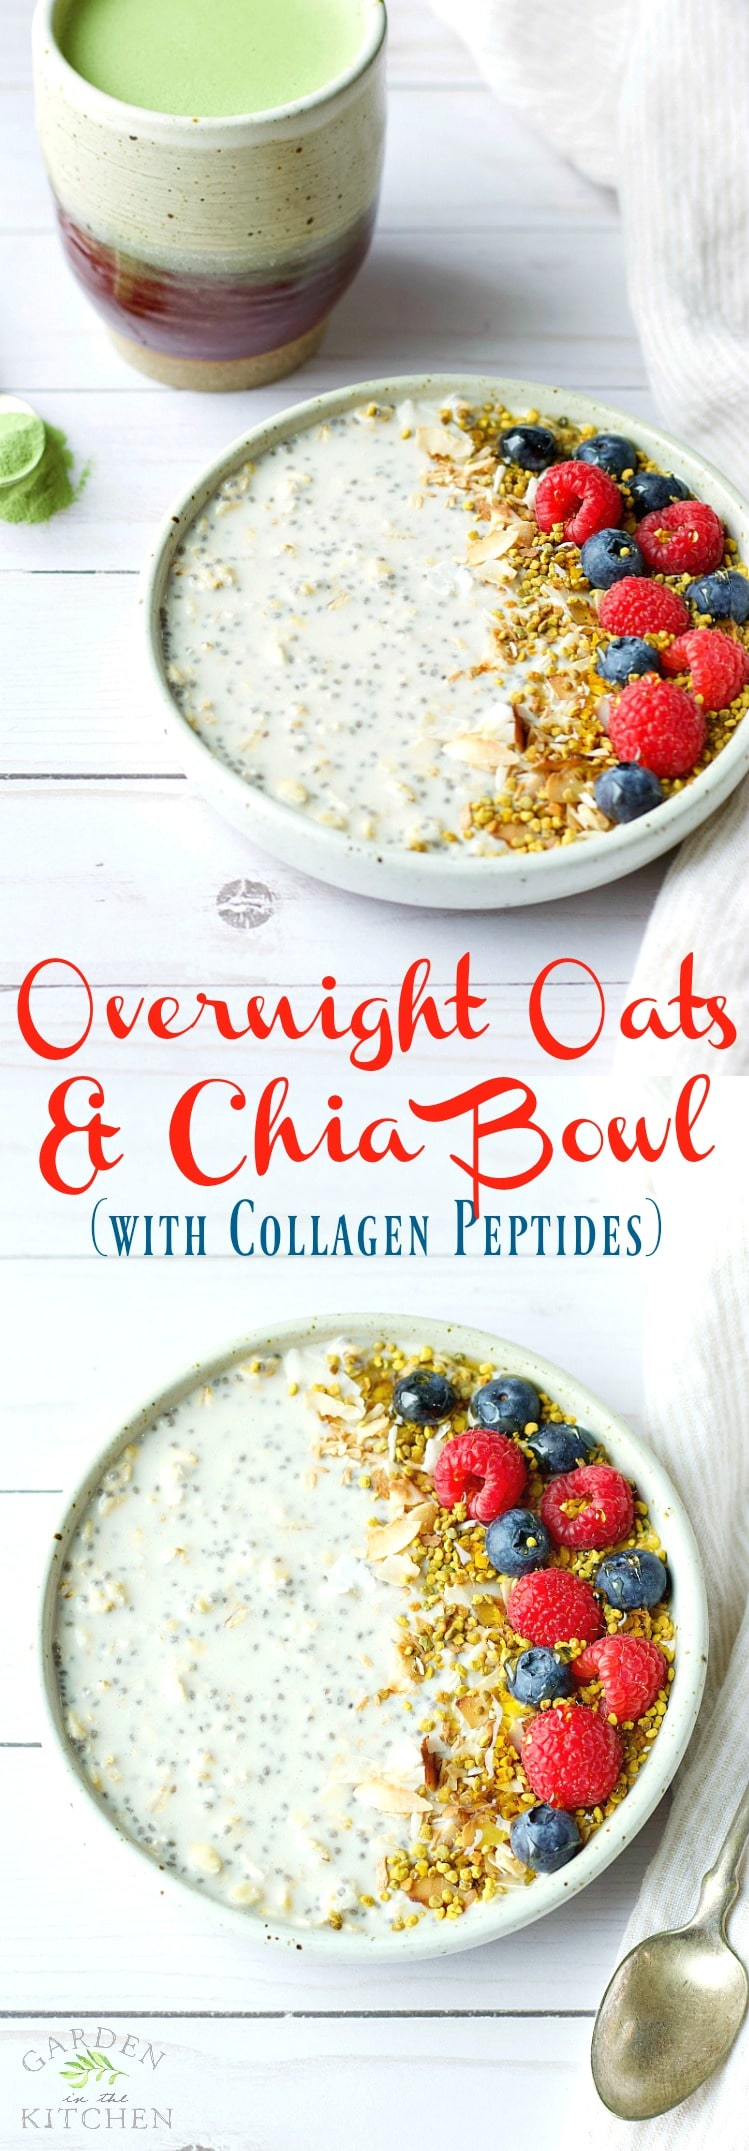 Overnight Oats & Chia Bowl (with Collagen Peptides!) | Garden in the Kitchen